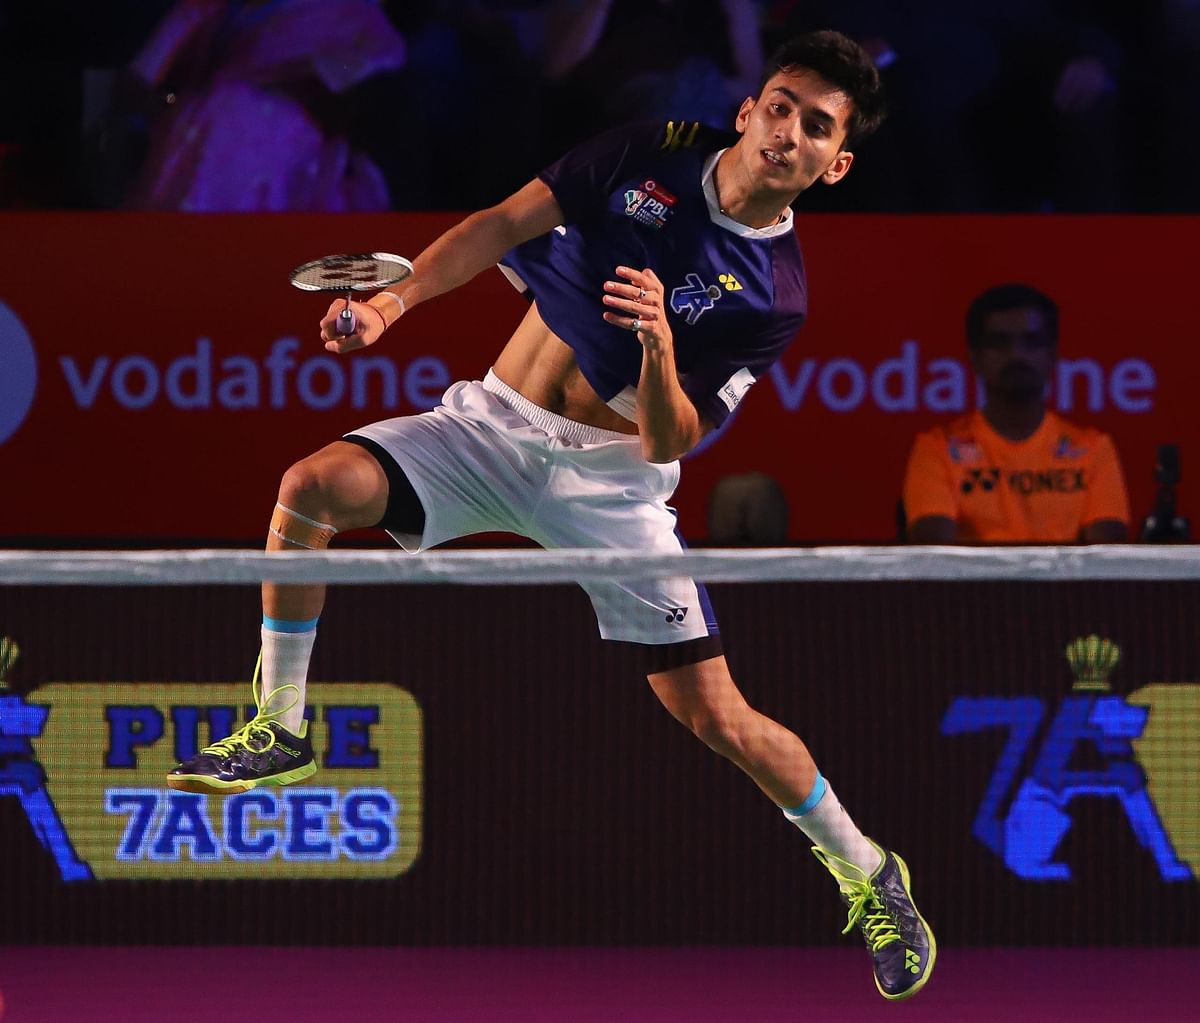 The in-form Lakshya Sen, who won four titles in the past two months, will also be a big attraction at the auction.